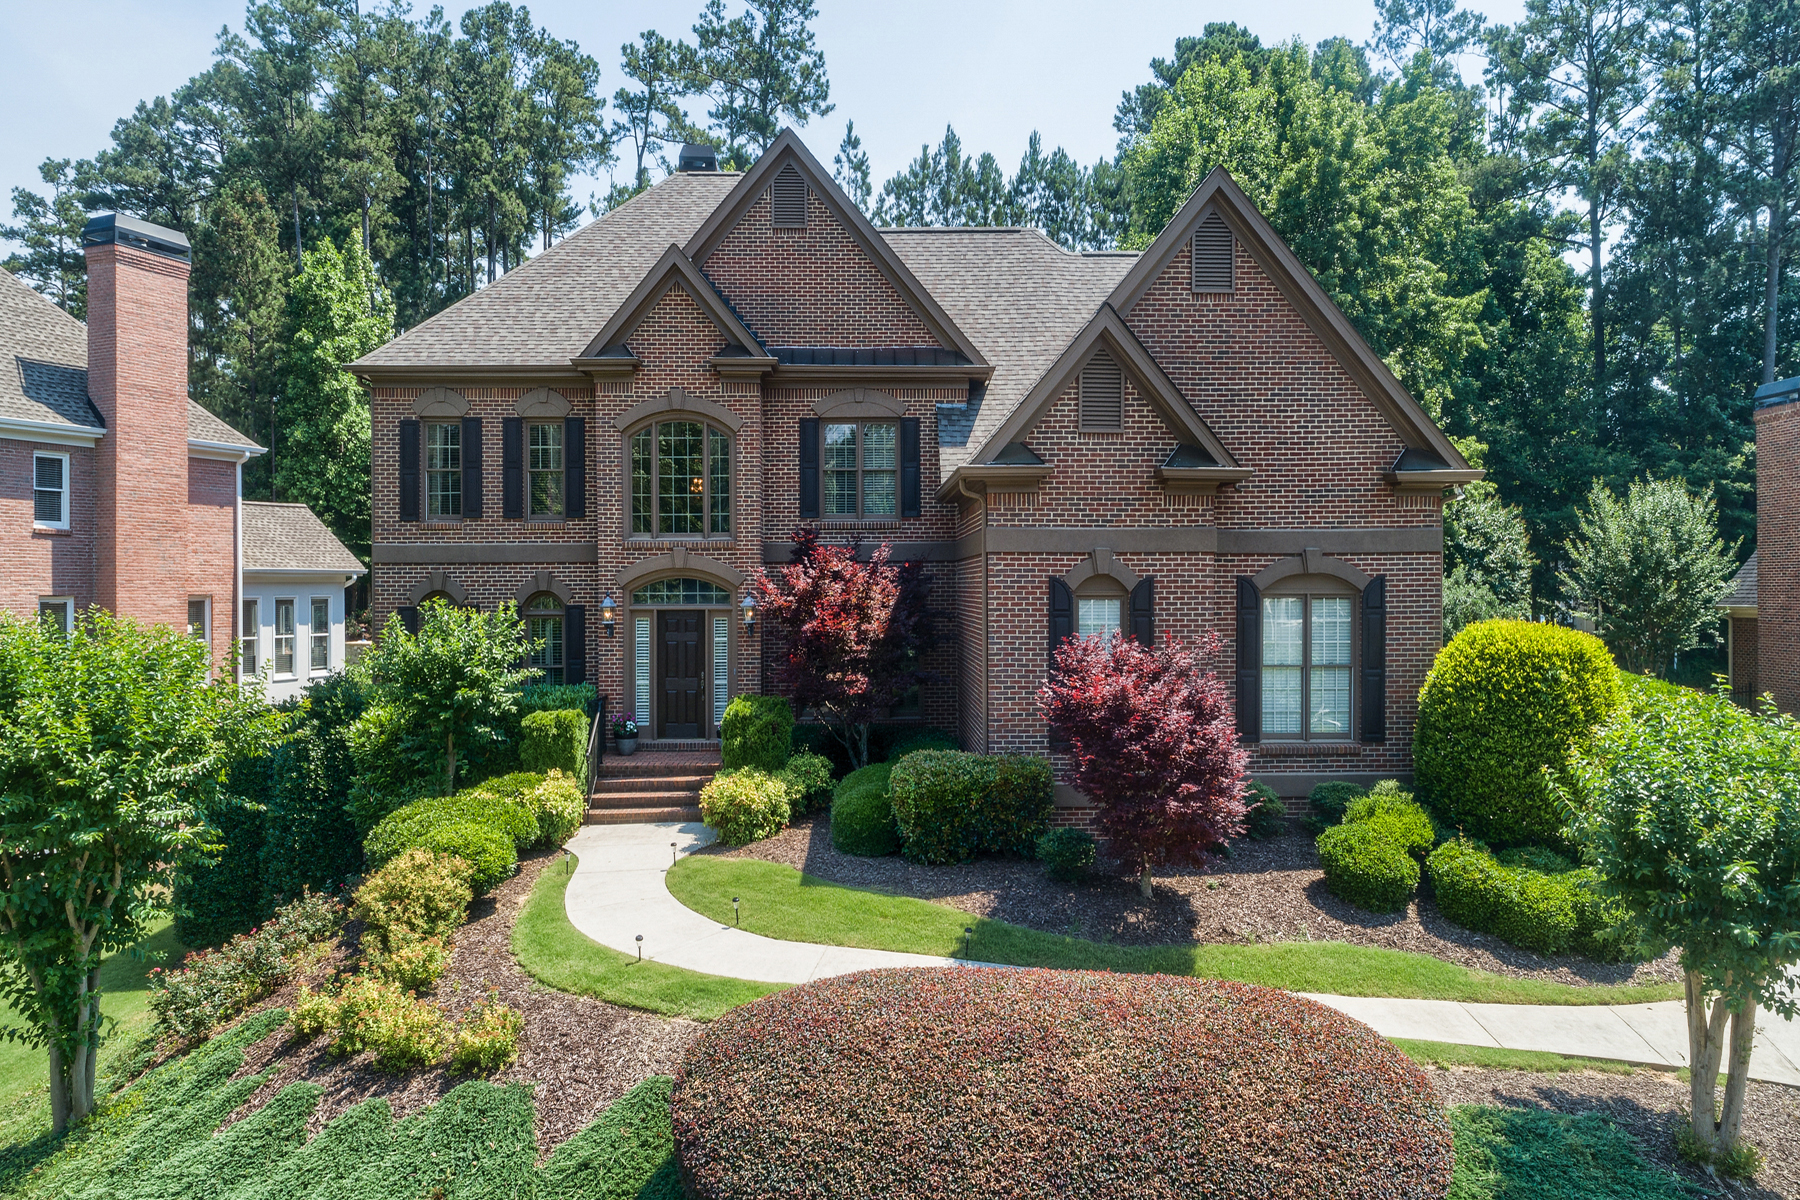 Single Family Home for Sale at Spectacular Executive Home In Crooked Creek 14401 Club Cir Milton, Georgia 30004 United States